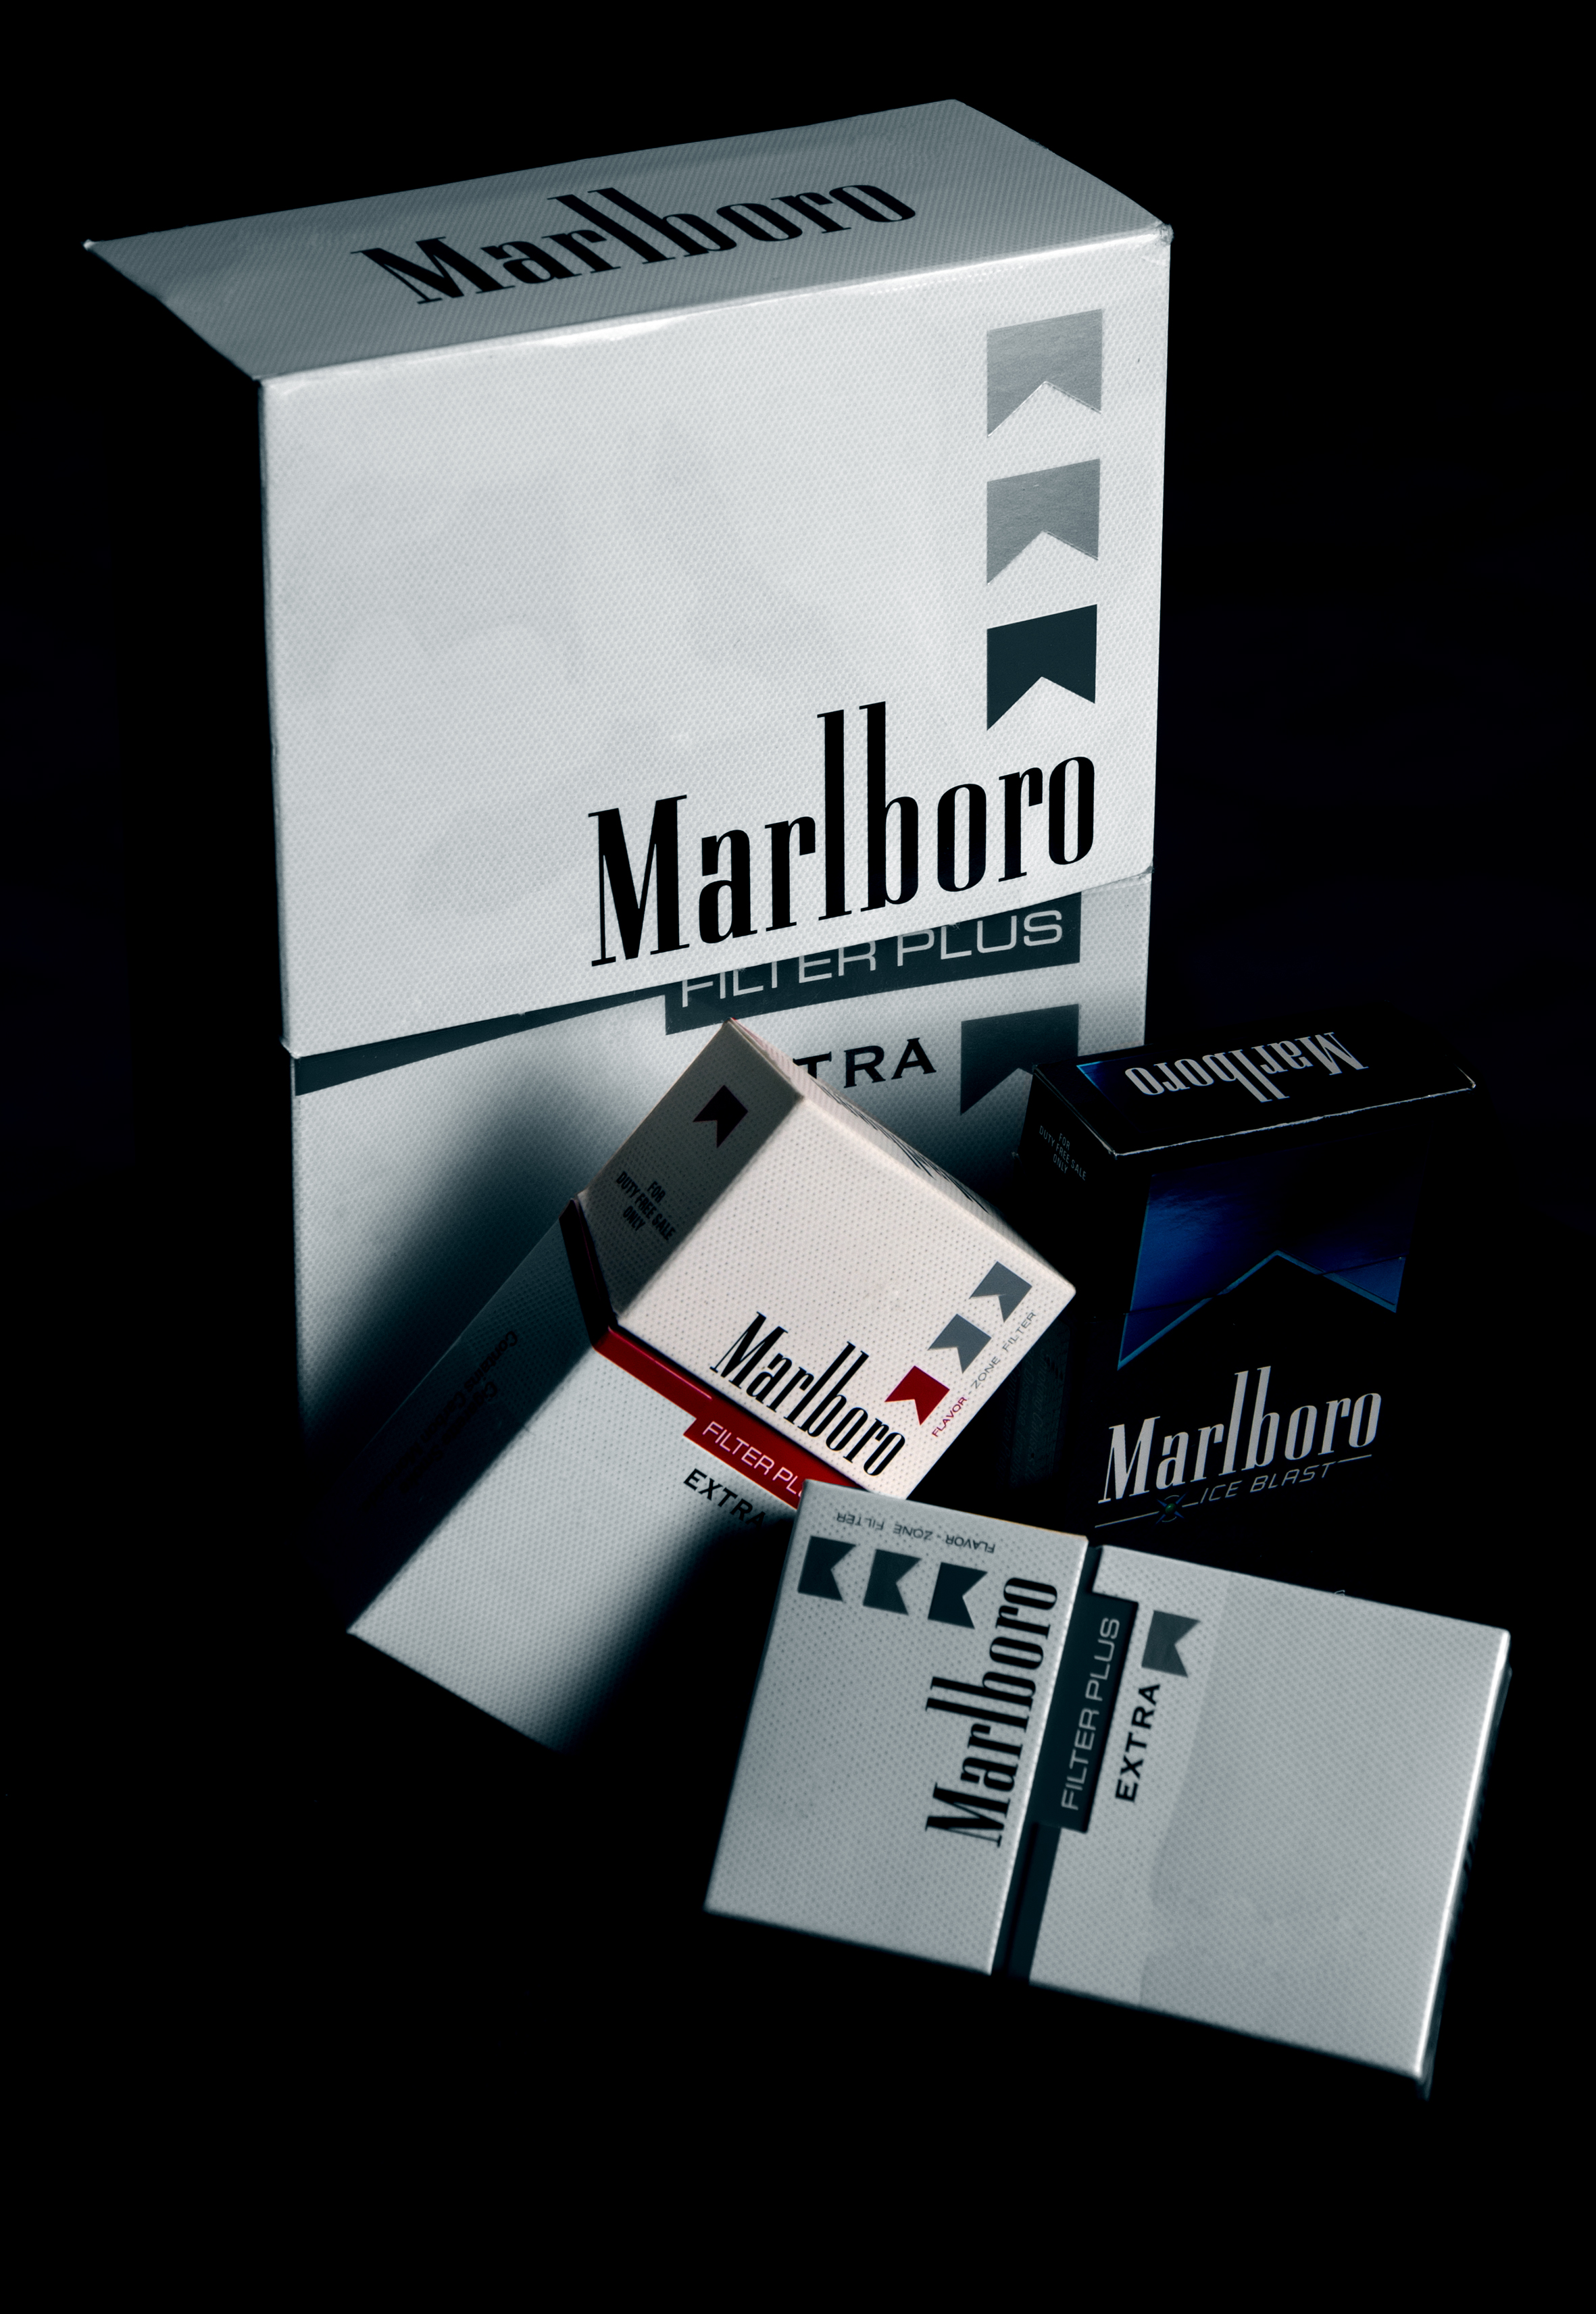 Marlboro Cigarette Wallpaper Hd Grayscale Photography Of Hand Holding Cigarette 183 Free